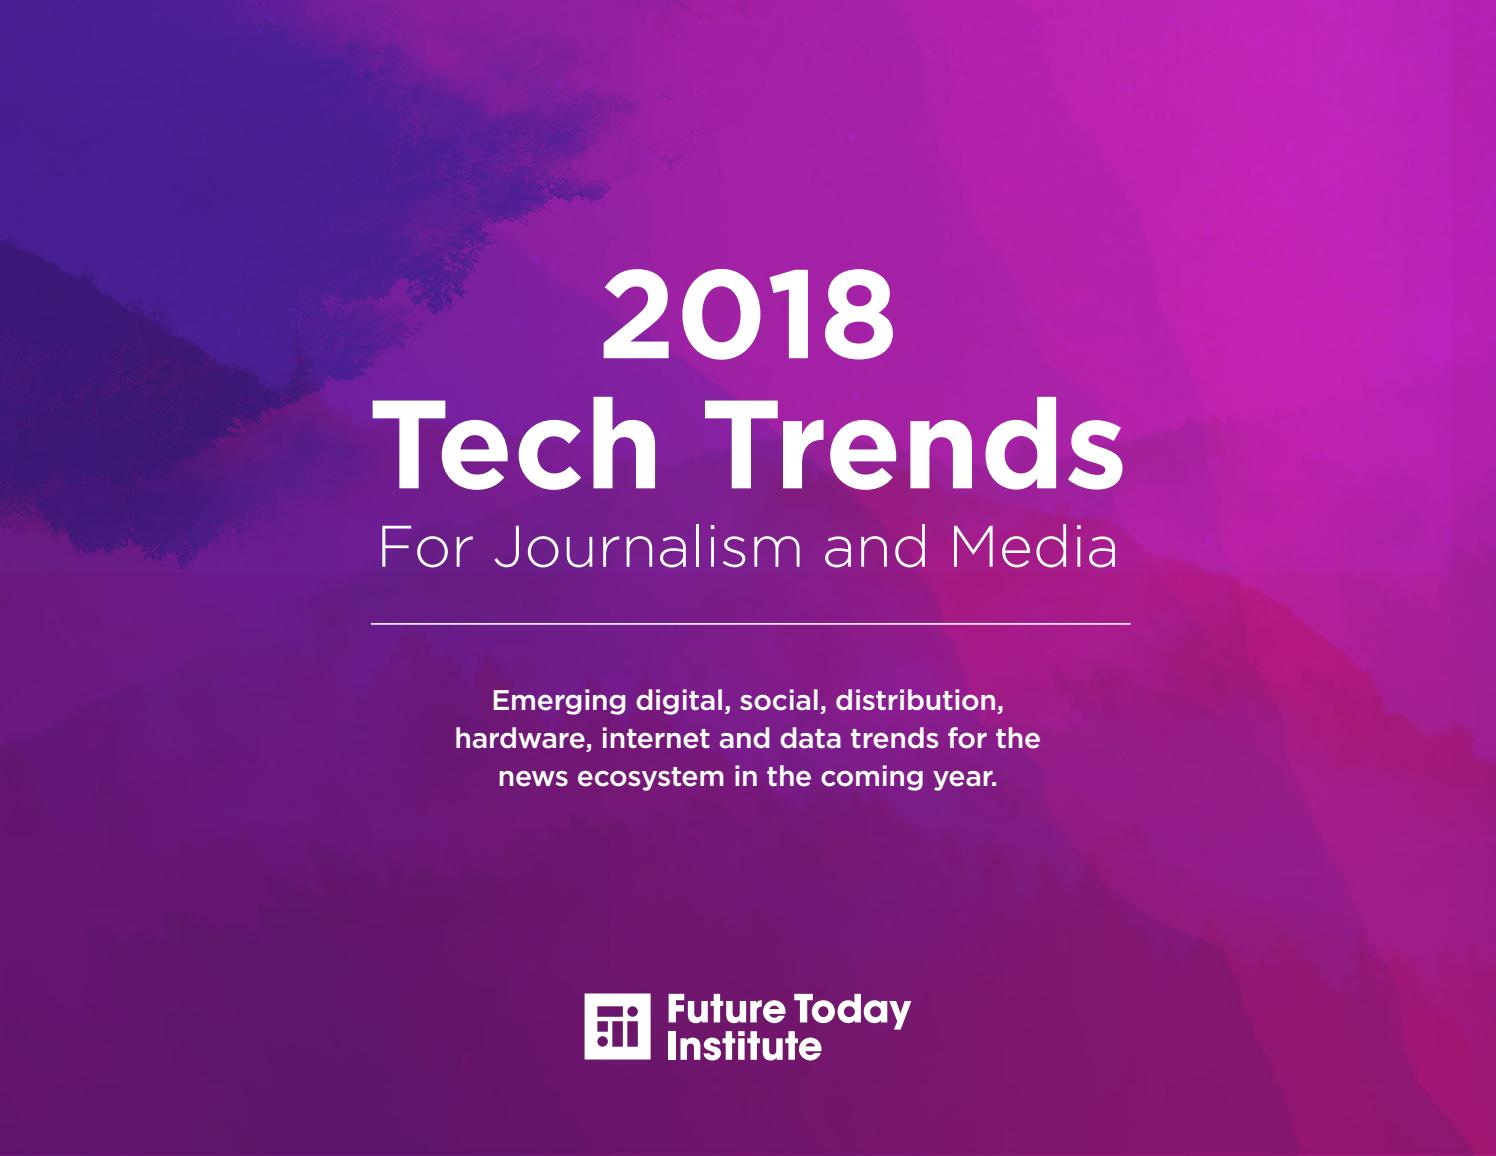 2018 tech trends for journalism and media